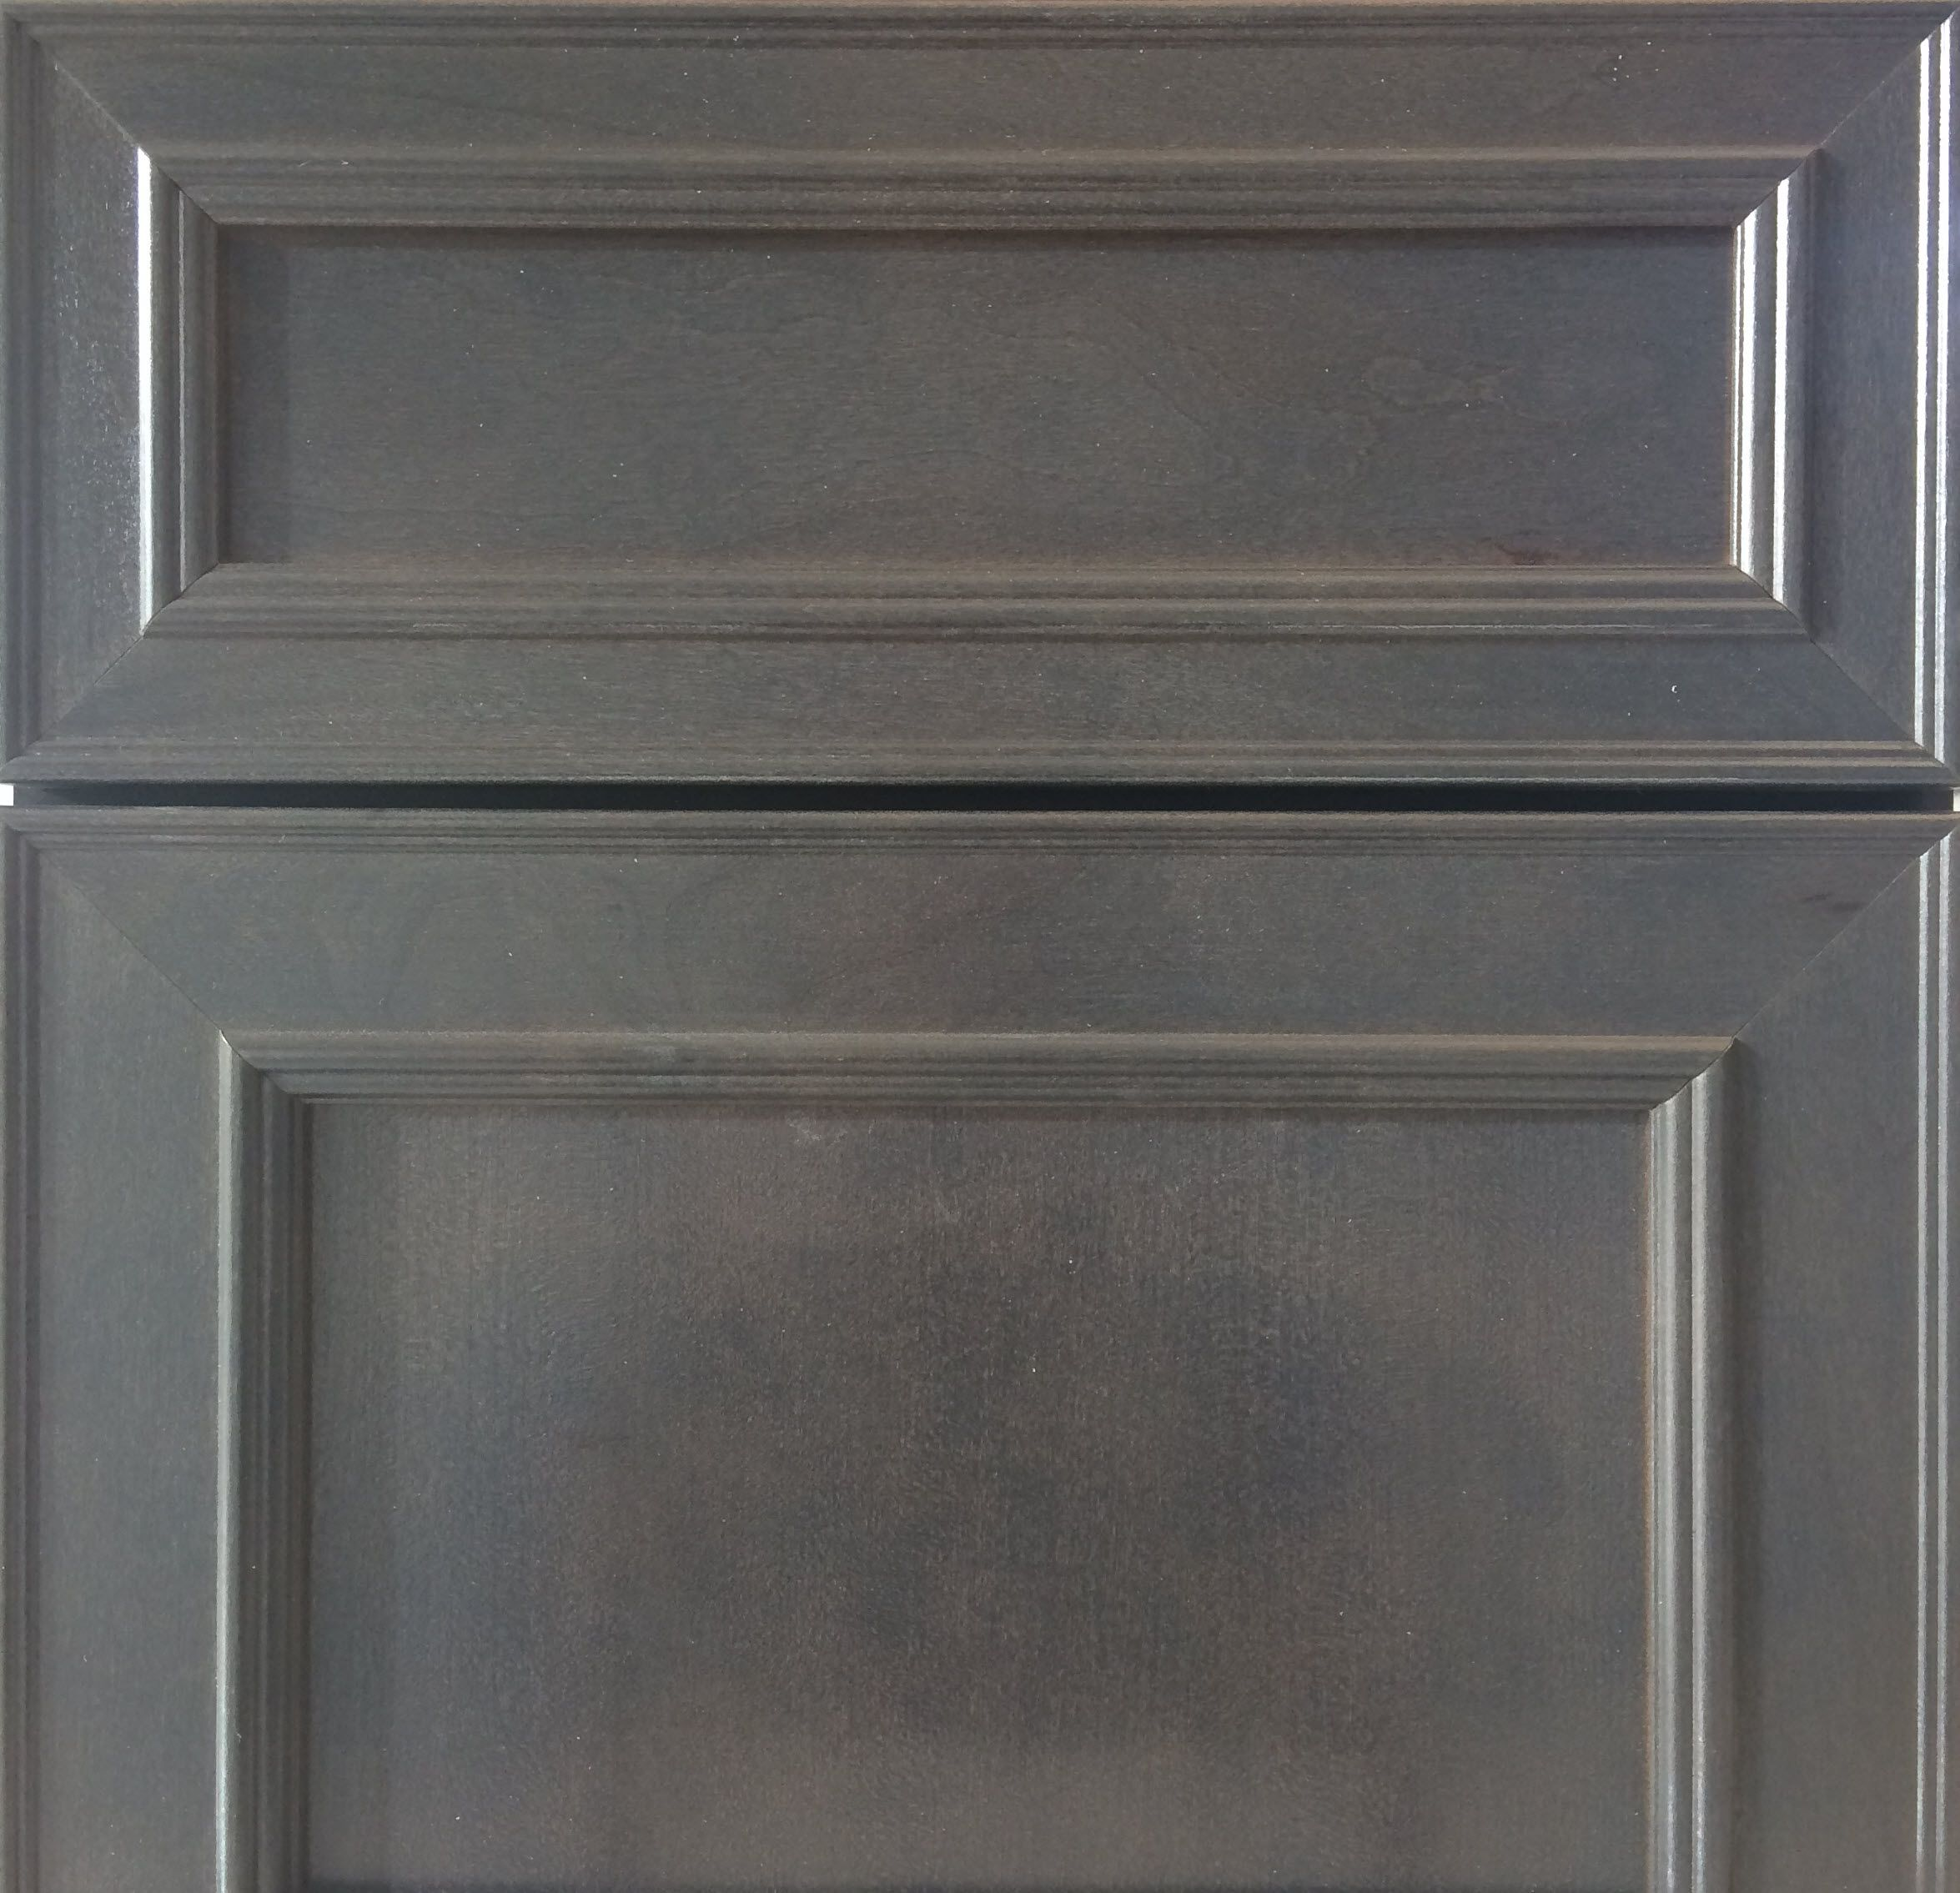 Upgraded Level 5 Kinsdale Cherry Cabinet In Slate With